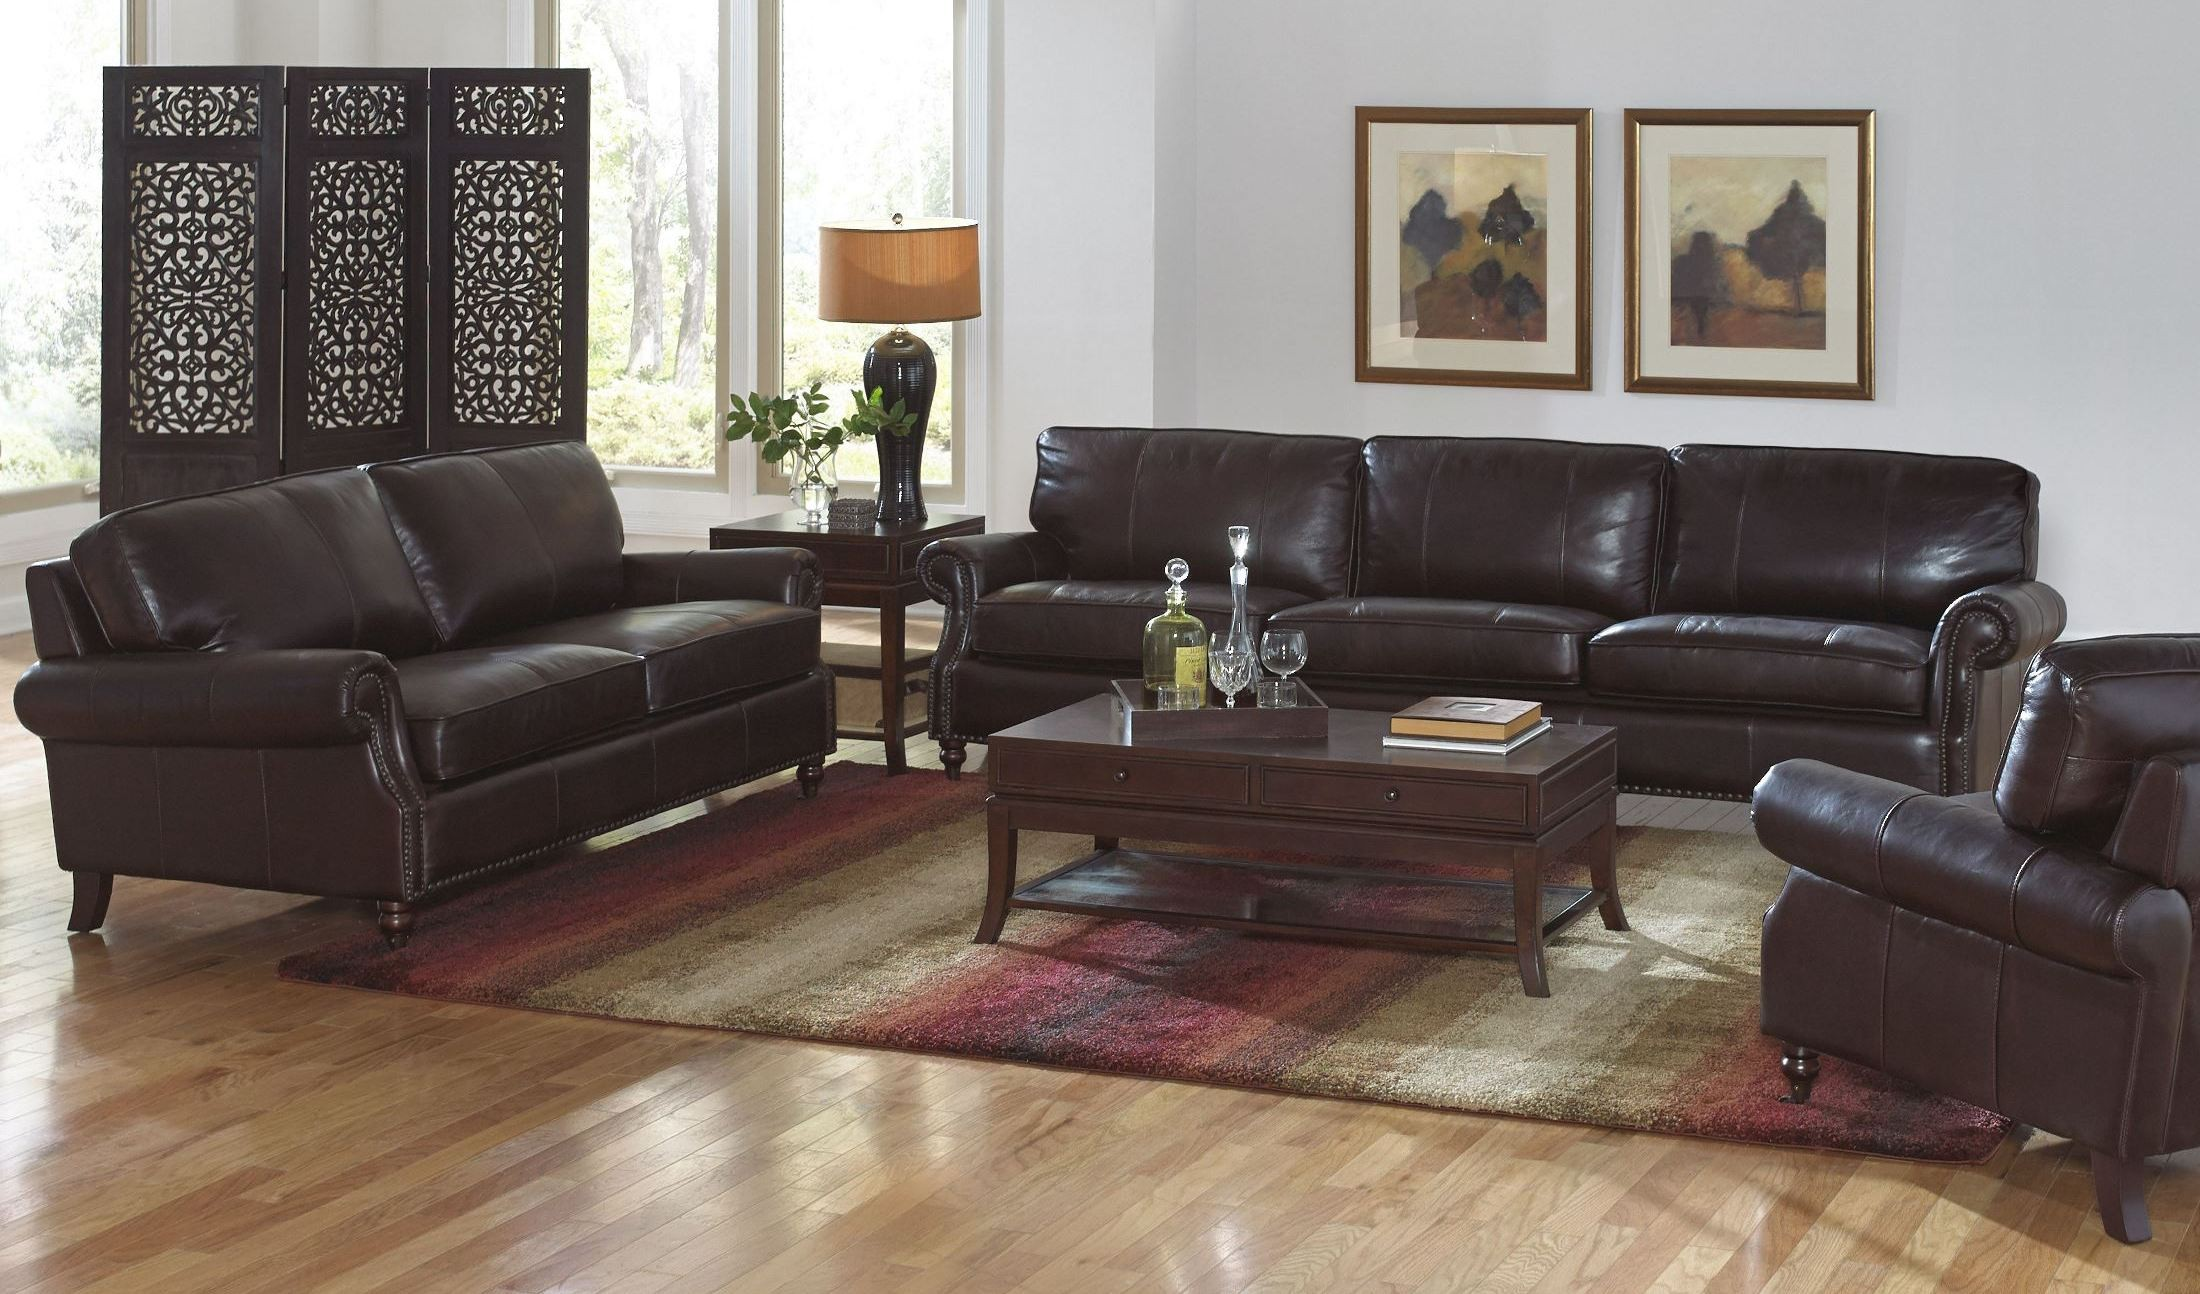 Stockton Dark Chocolate Leather Living Room Set From Lazzaro Wh 1120 30 9012g Coleman Furniture